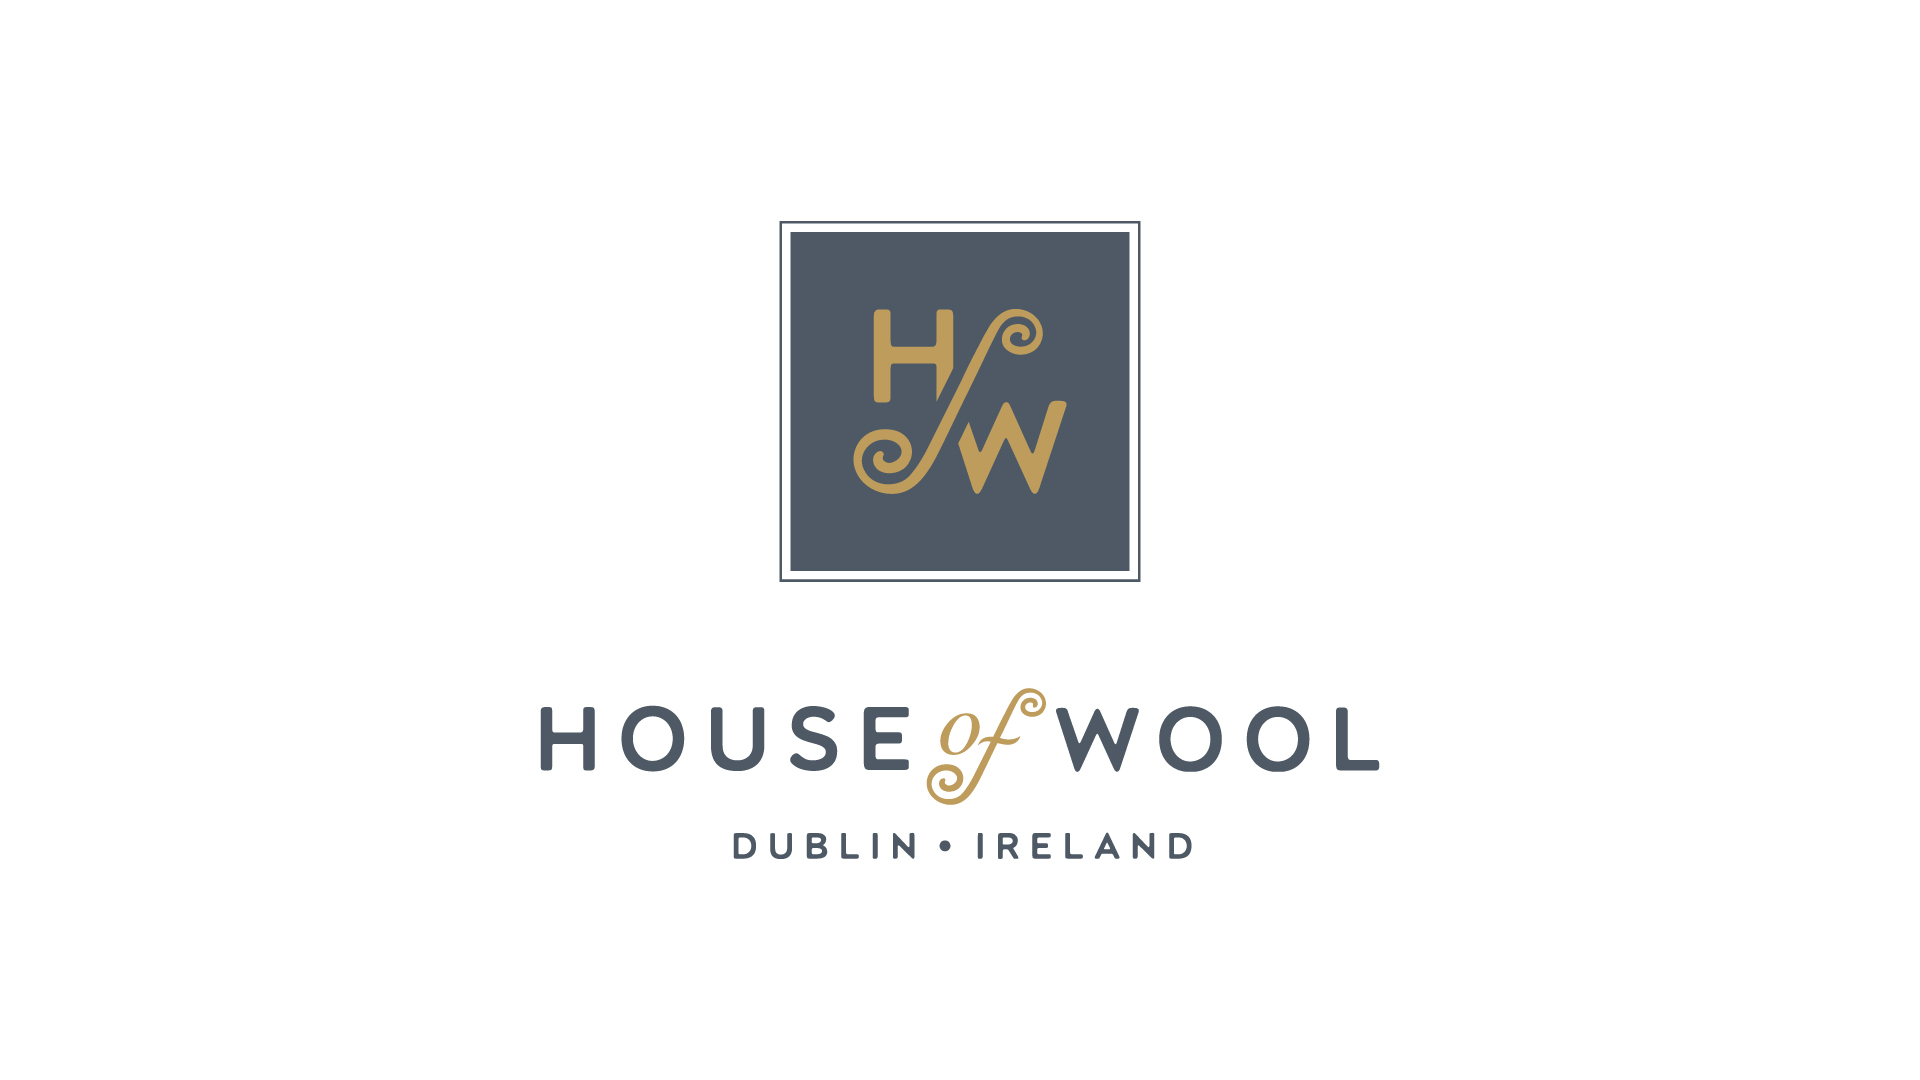 Cover image: House of Wool